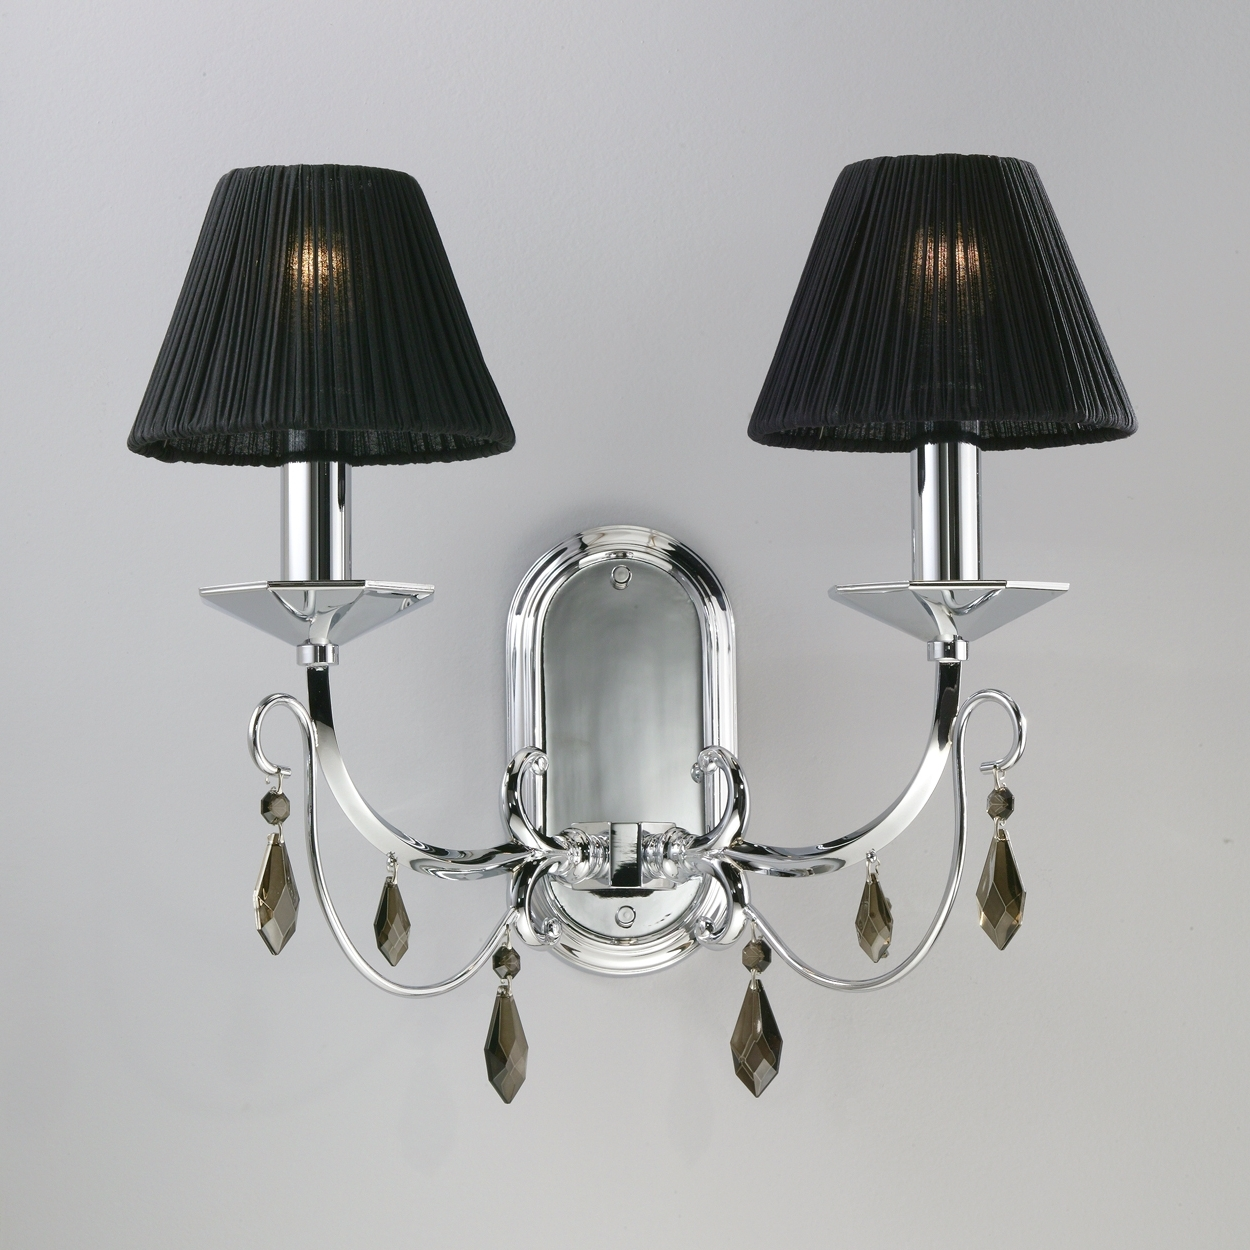 Black Clip On Lamp Shades – Lamp Design Ideas With Regard To 2018 Chandelier Lamp Shades Clip On (View 2 of 15)